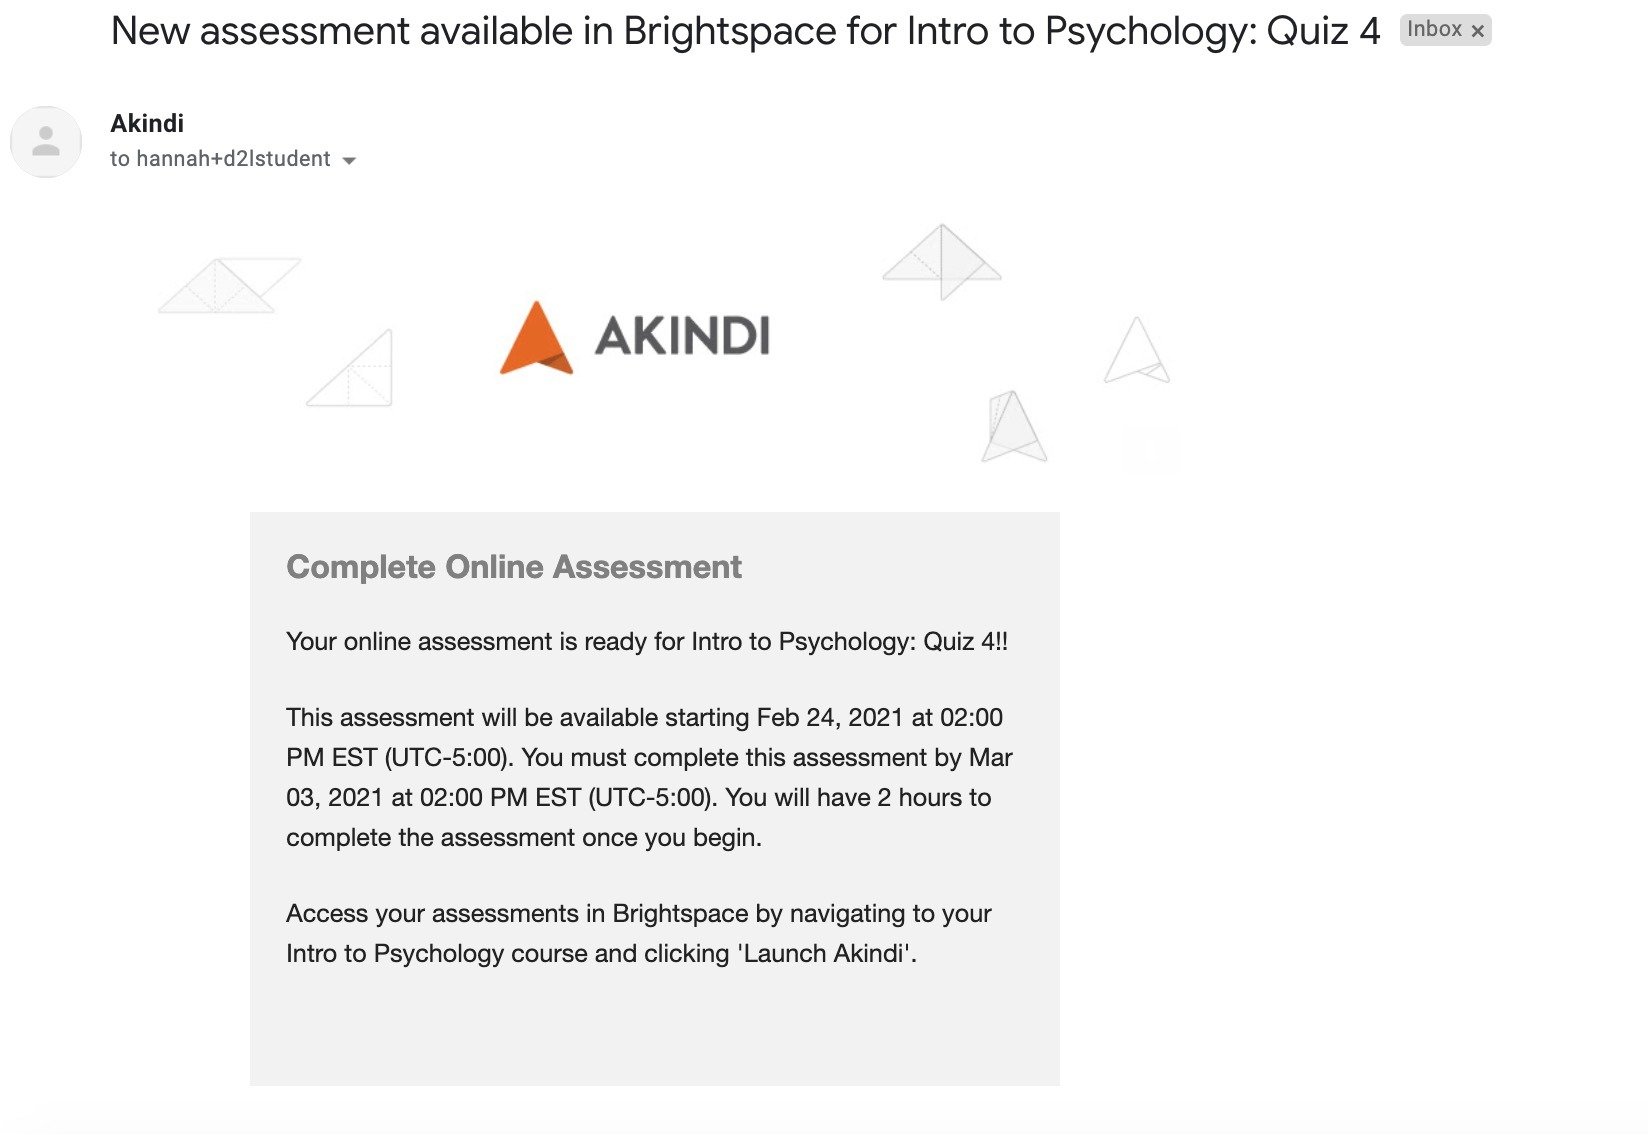 email from akindi: notification of online assessment